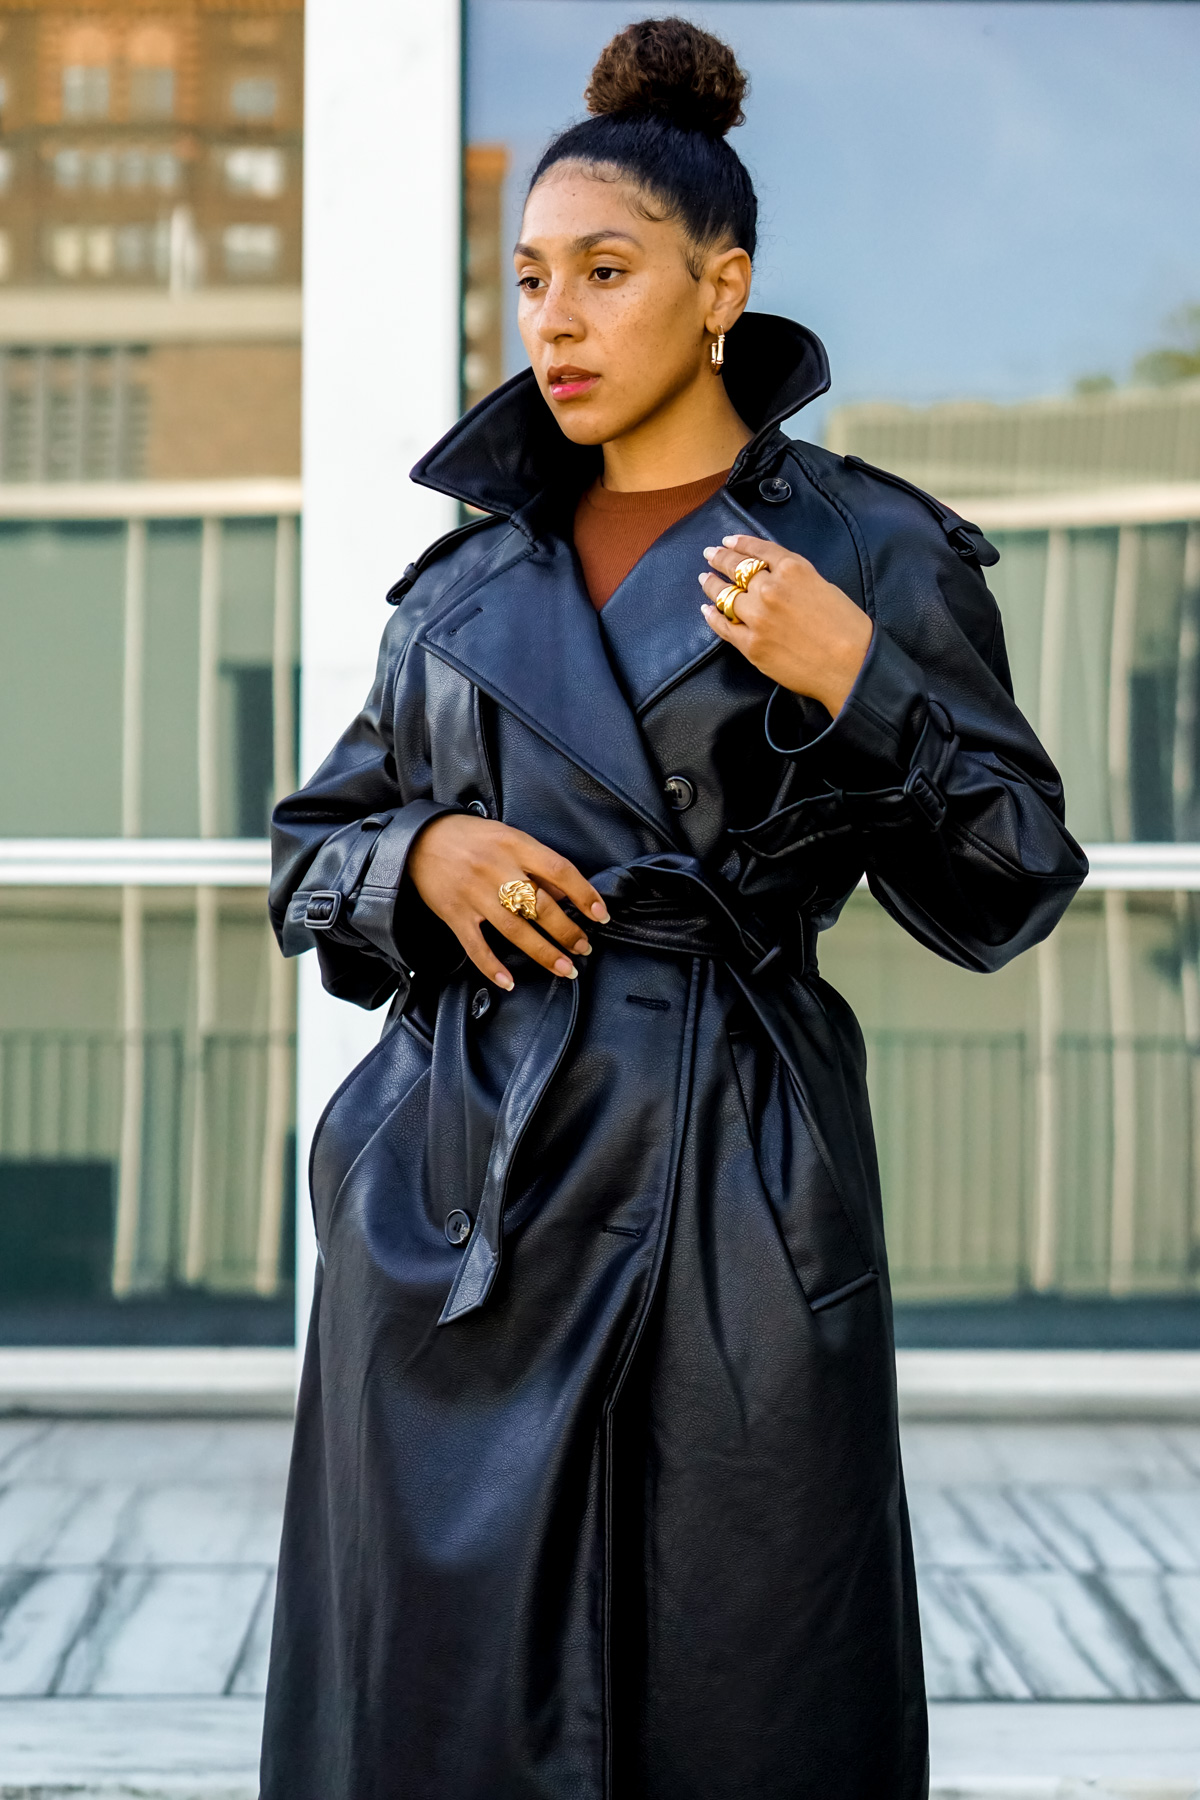 leather trench coat outfit, fall outfit ideas for women, black fashion bloggers inspiration, affordable trench coats women